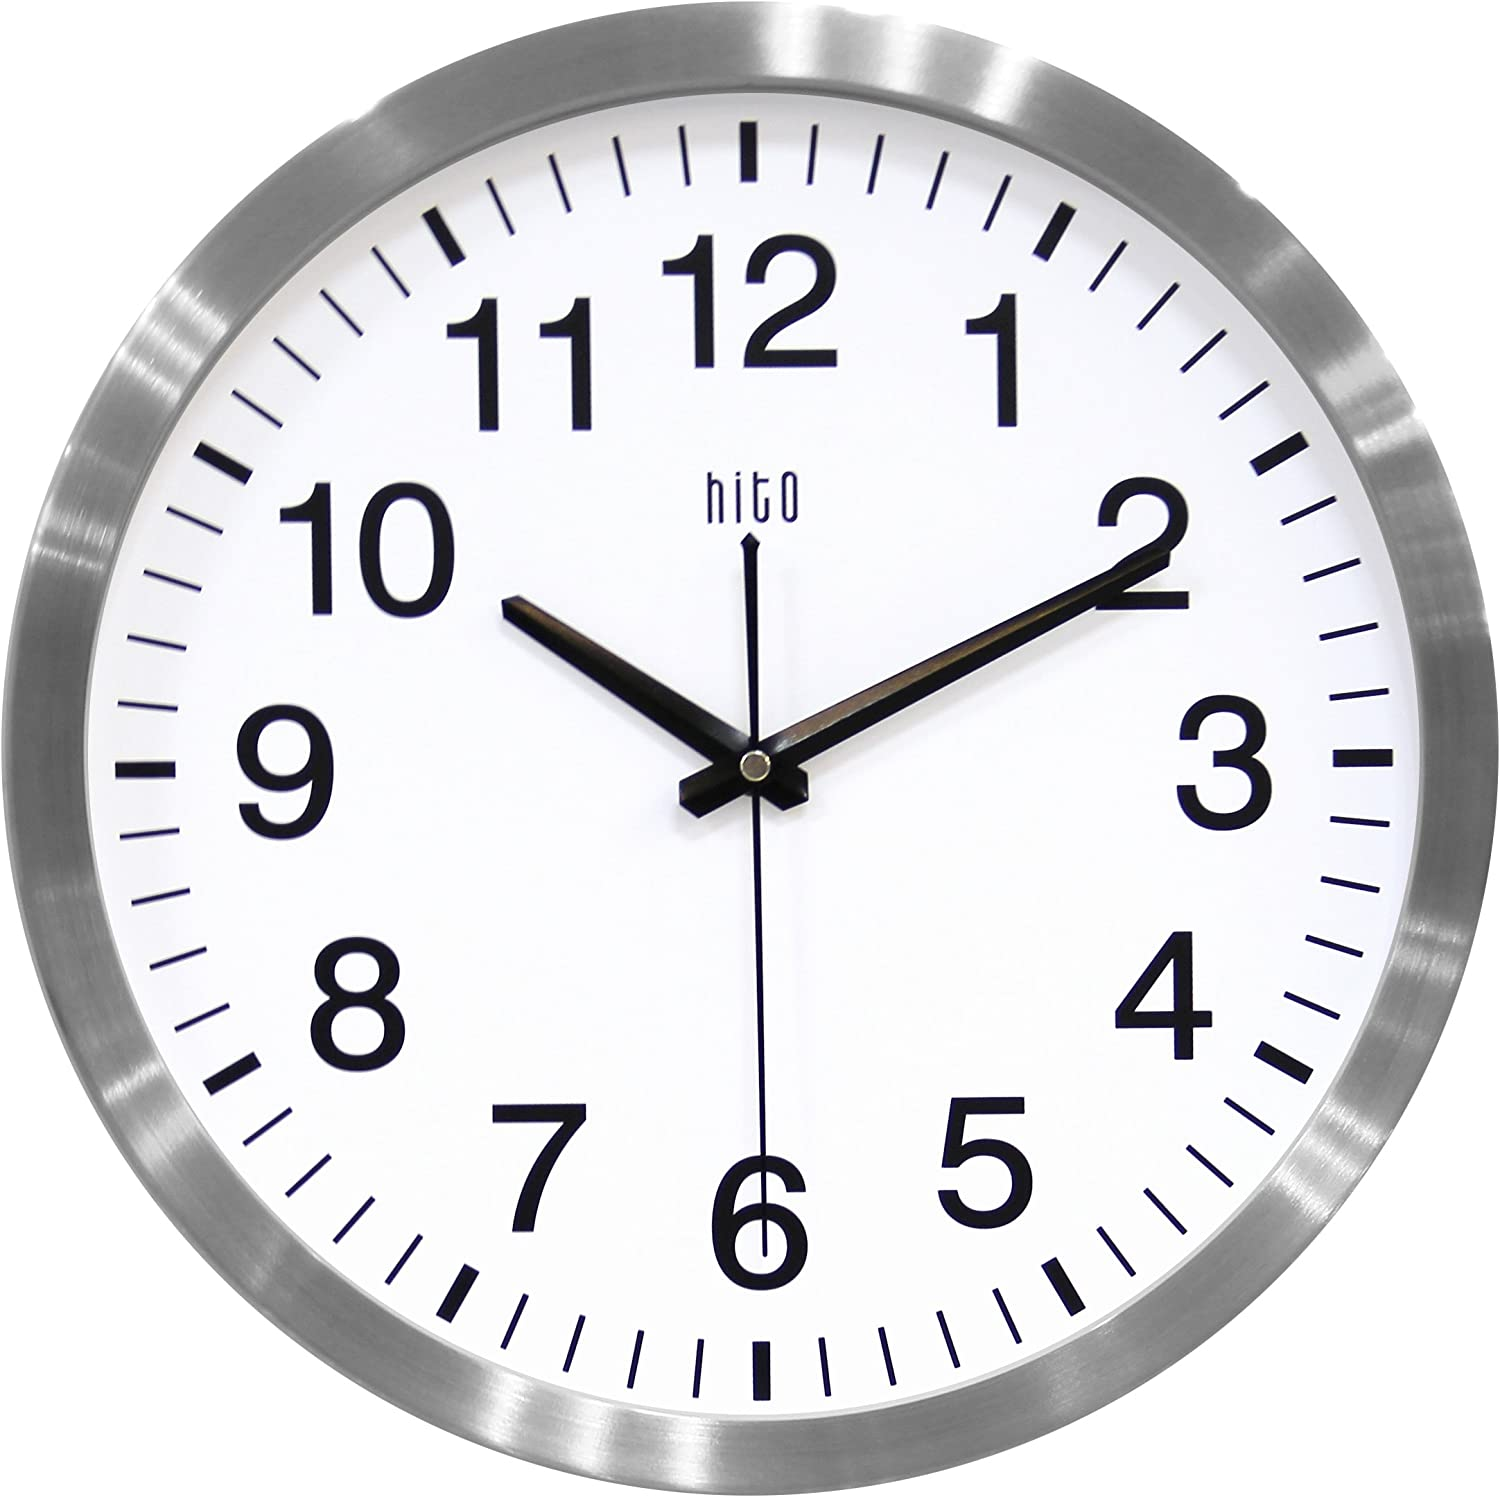 Amazon Com Hito Silent Wall Clock Non Ticking 14 Inch Large Oversized Excellent Accurate Sweep Movement Aluminum Frame Decorative For Kitchen Living Room Bedroom Office Classroom Silver Kitchen Dining